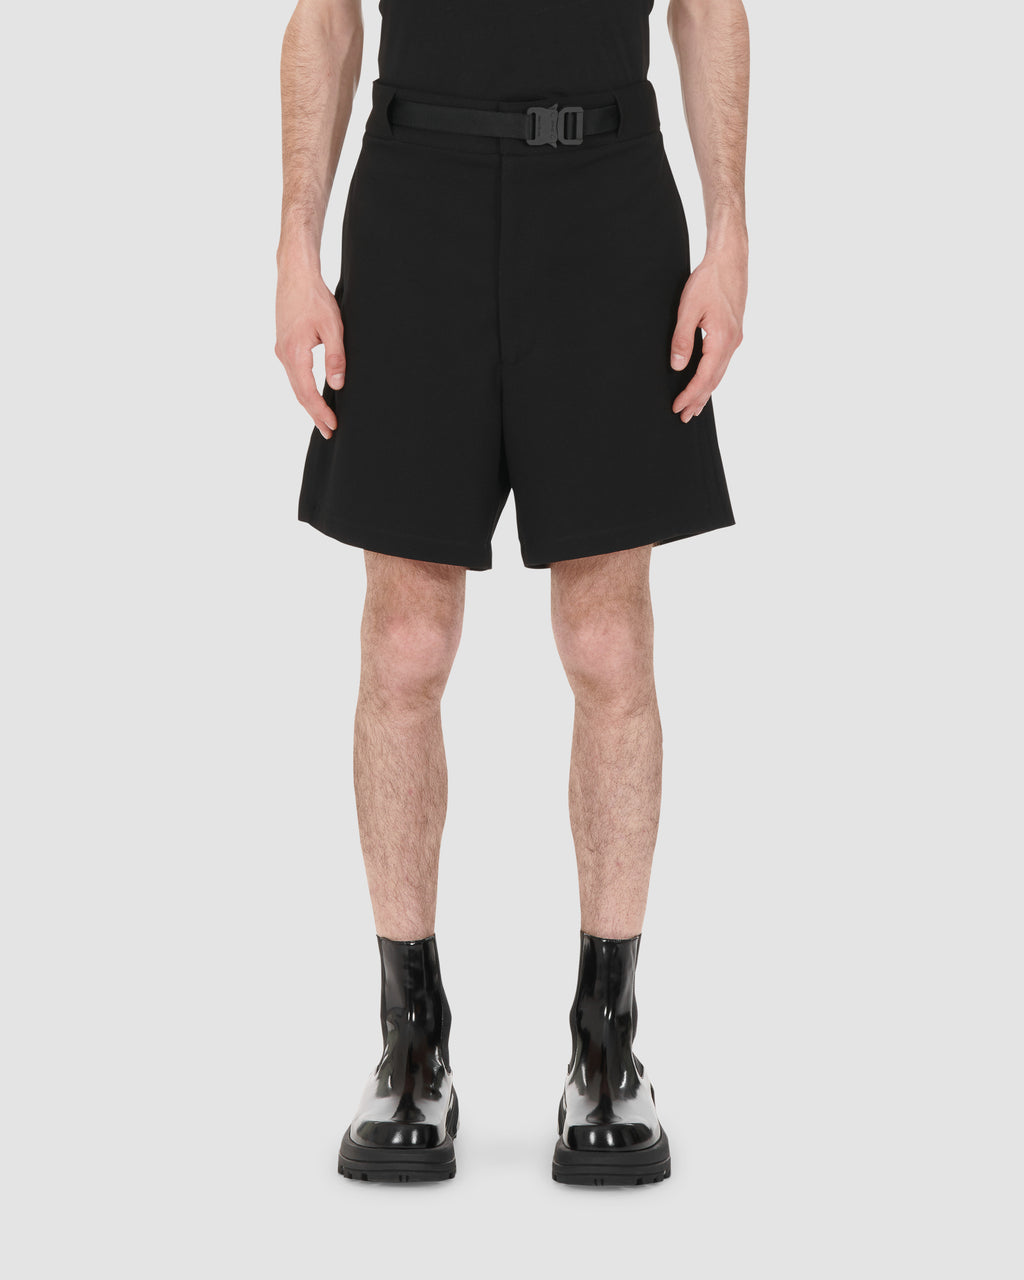 1017 ALYX 9SM | BLACK CLASSIC SHORT W BUCKLE | Pants | Black, Google Shopping, Man, MEN, S20, S20 Drop II, SHORTS, Trousers